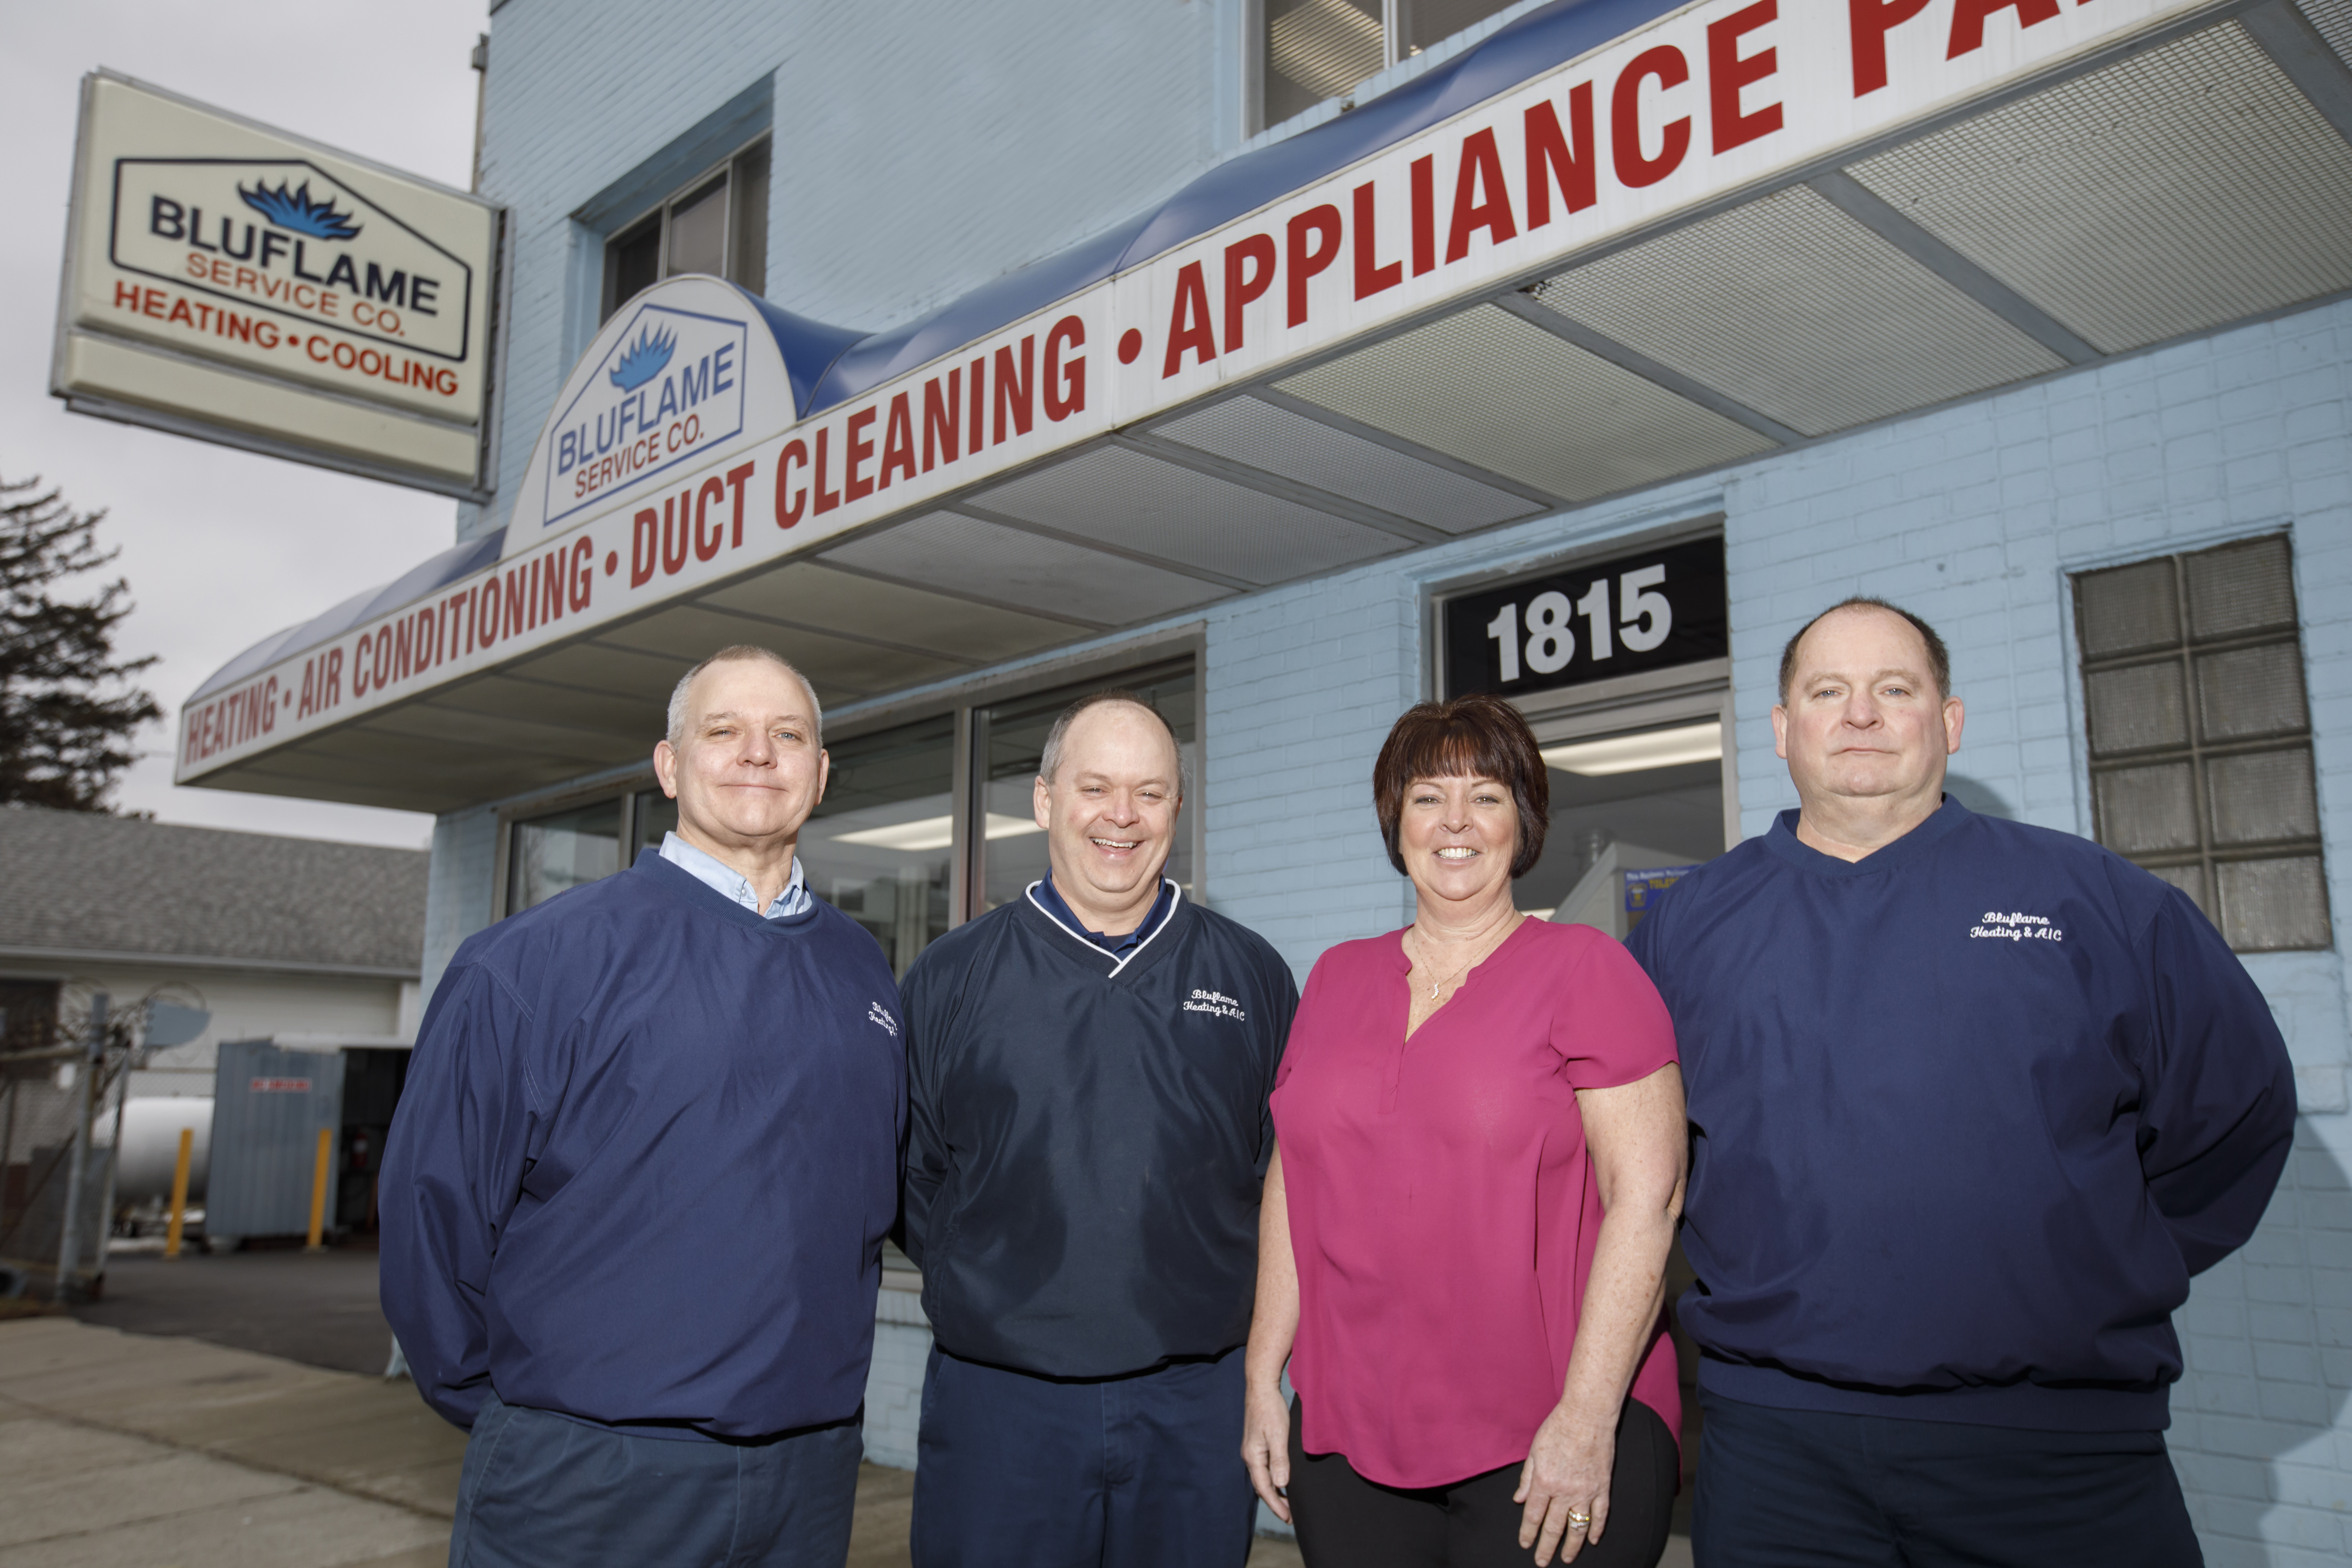 Blueflame Heating and Cooling Services Toledo